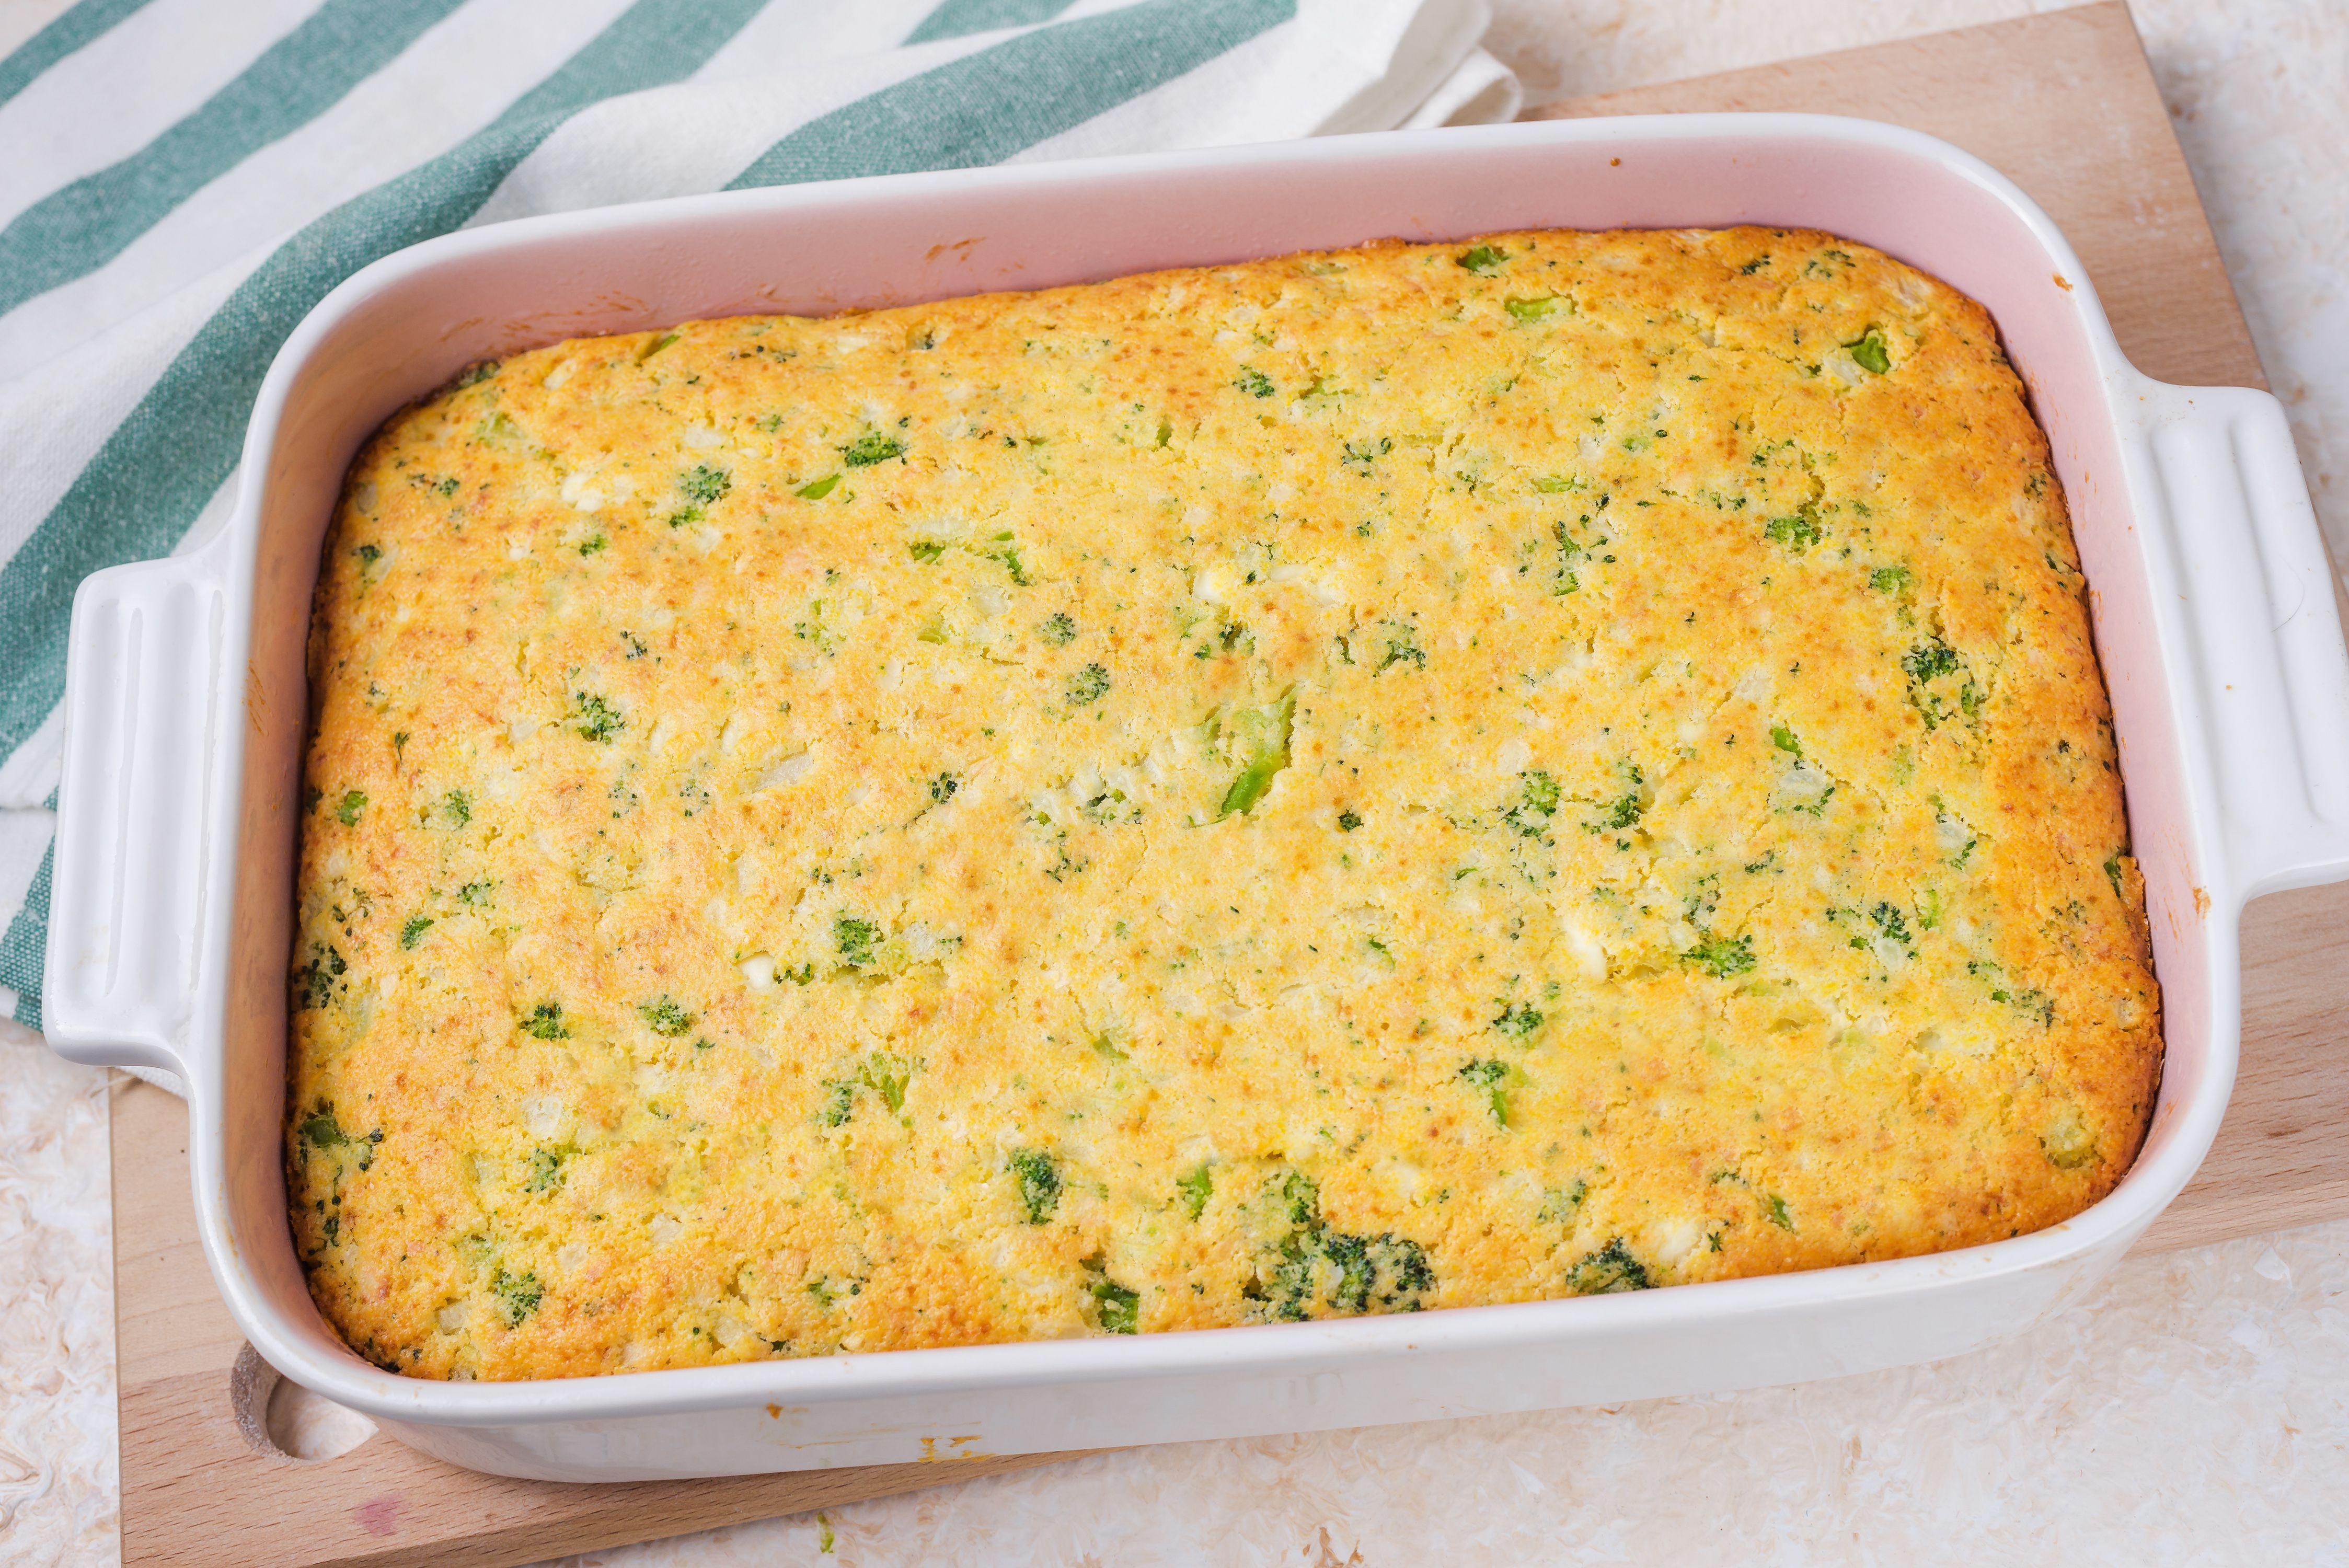 Casserole baked in oven.